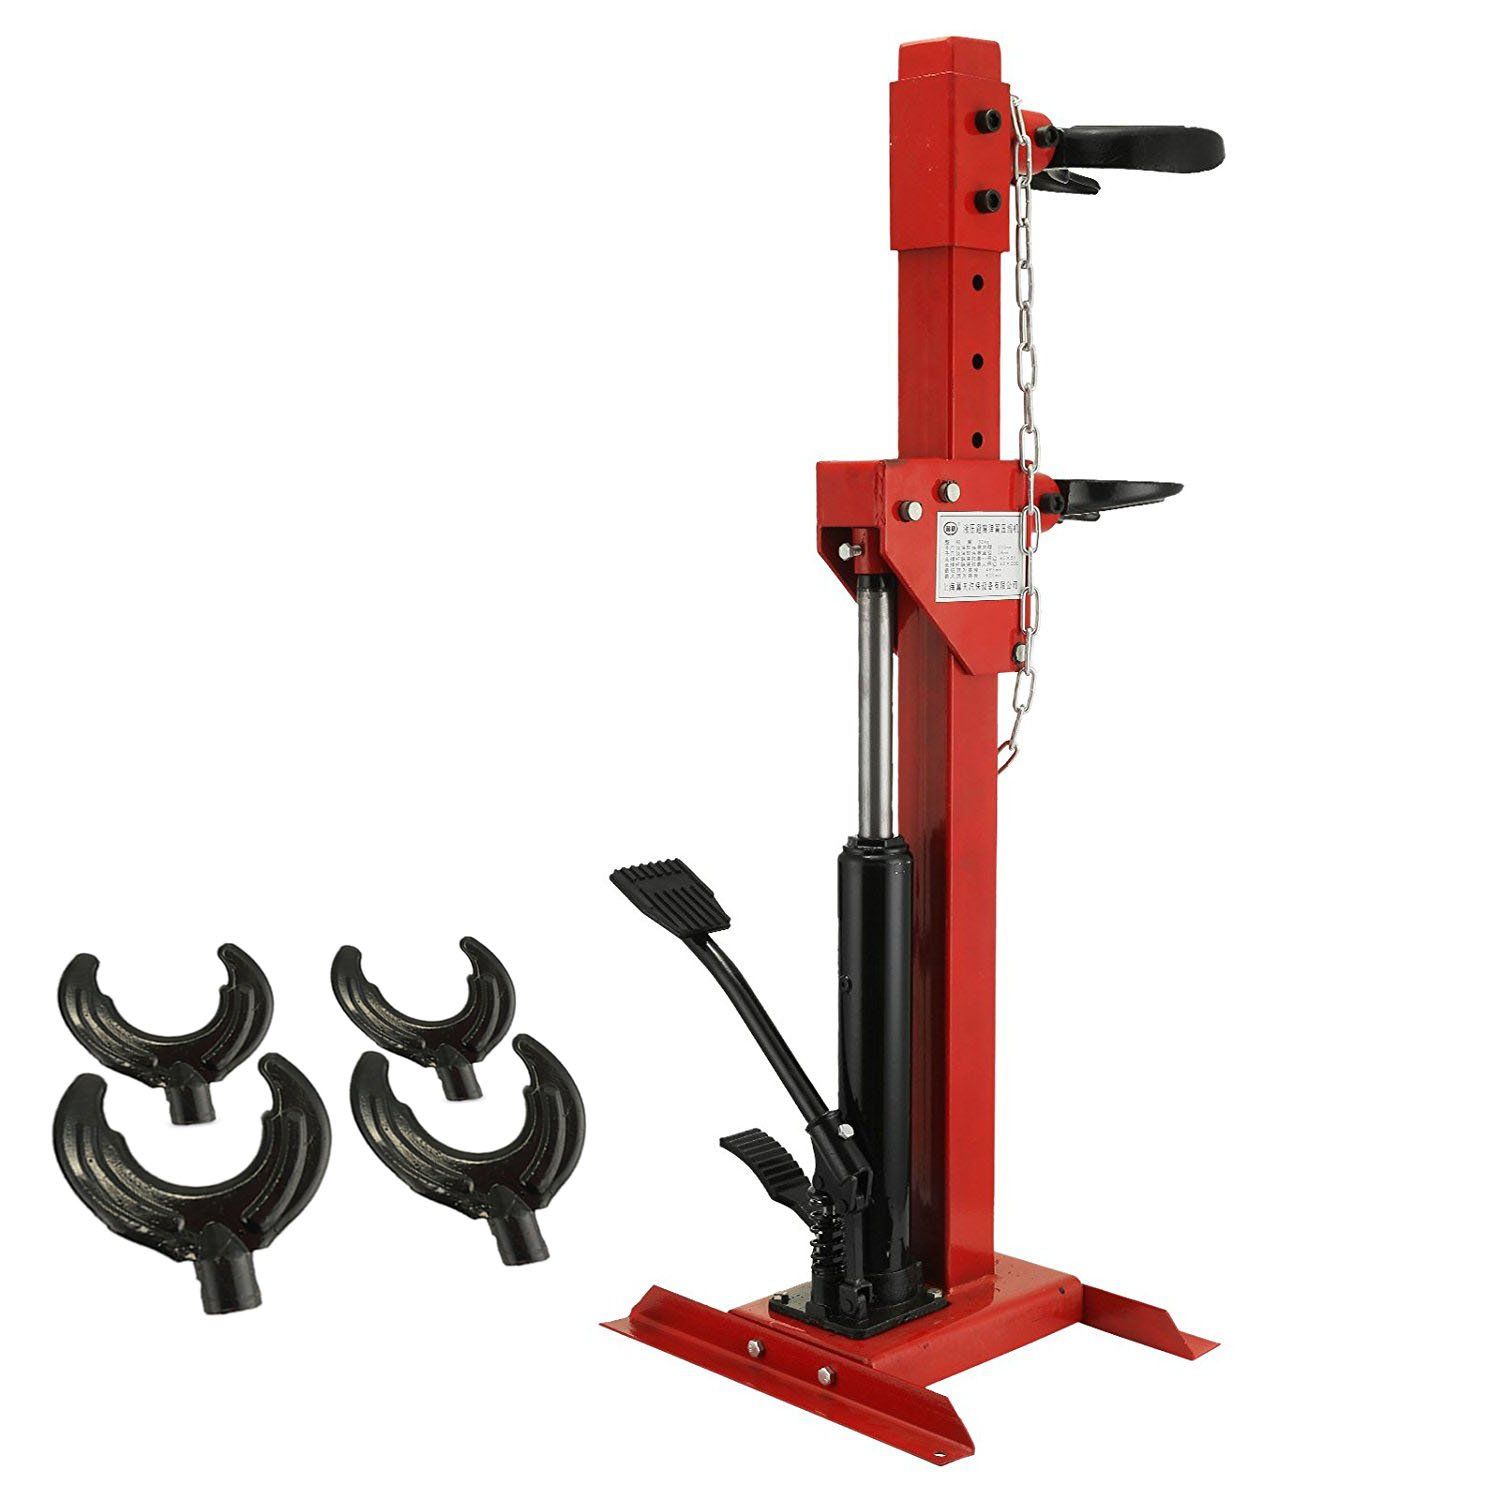 BestEquip 3 Ton Capacity Auto Strut Coil Spring Compressor 6600LB Strut Compressor with 4 Snap Joints Air Hydraulic Tool for Car Repairing and Strut Spring Removing (3 Ton Capacity) by BestEquip (Image #1)